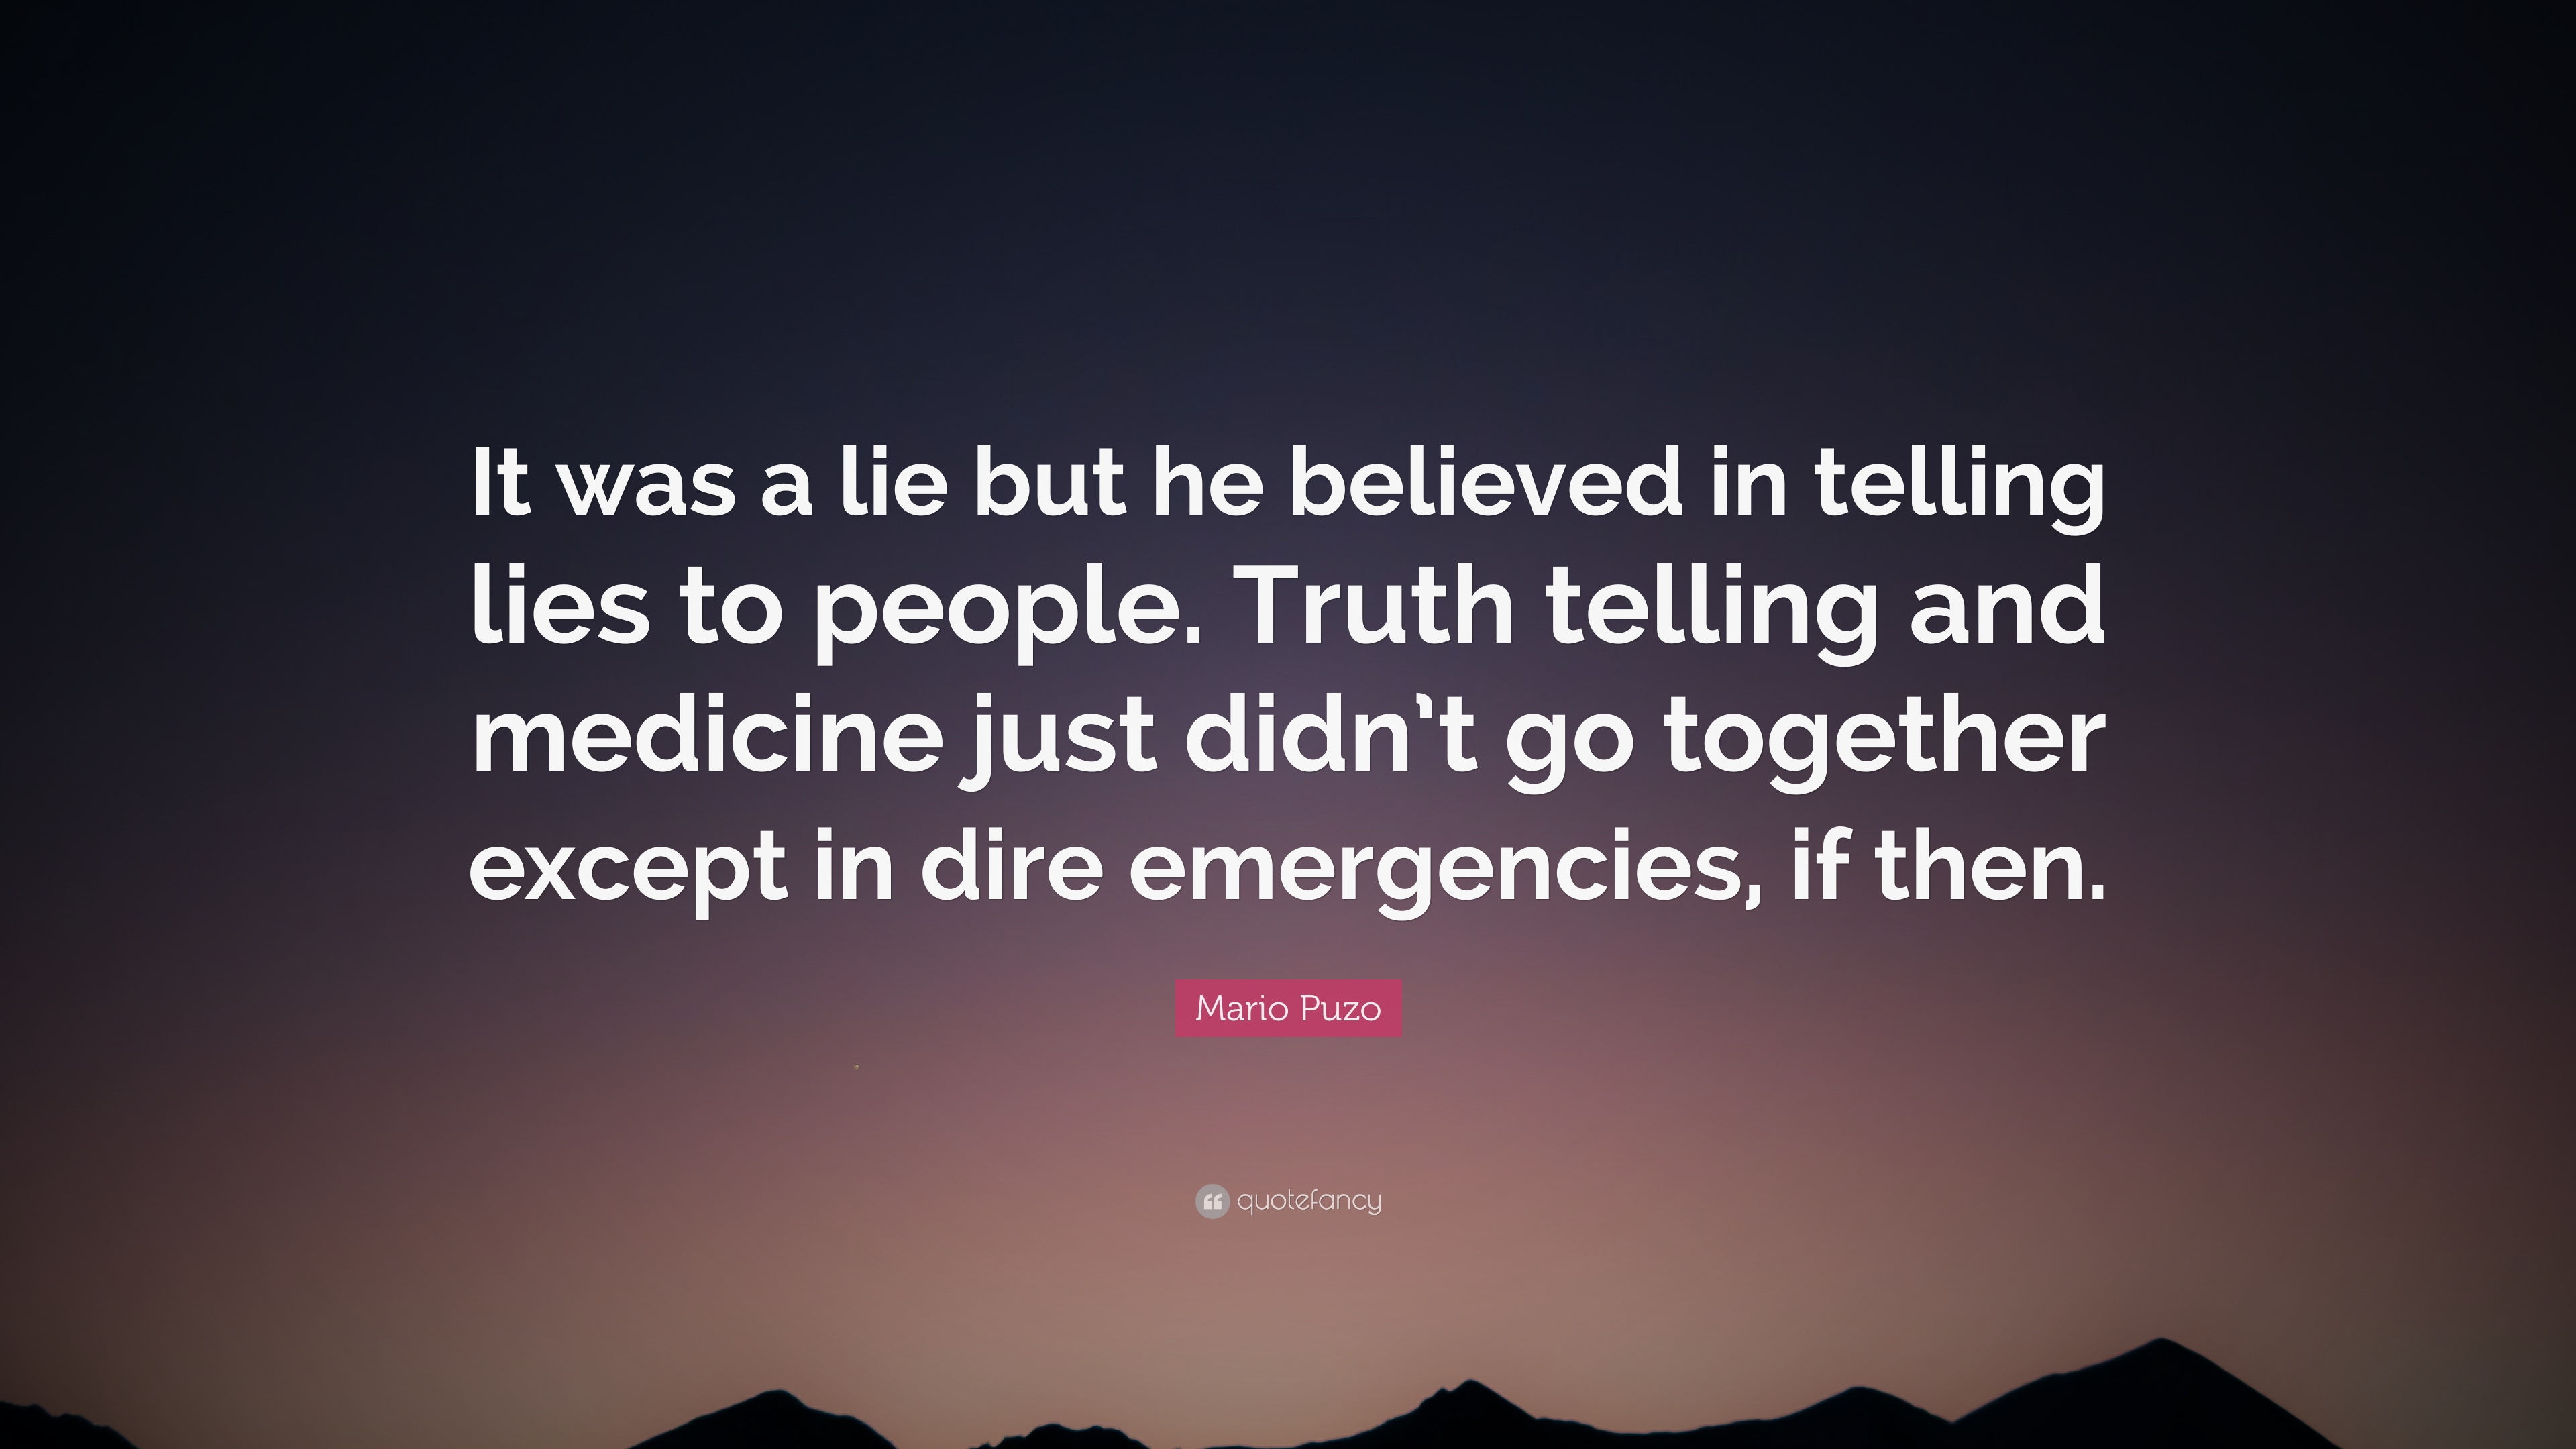 Mario Puzo Quote It Was A Lie But He Believed In Telling Lies To